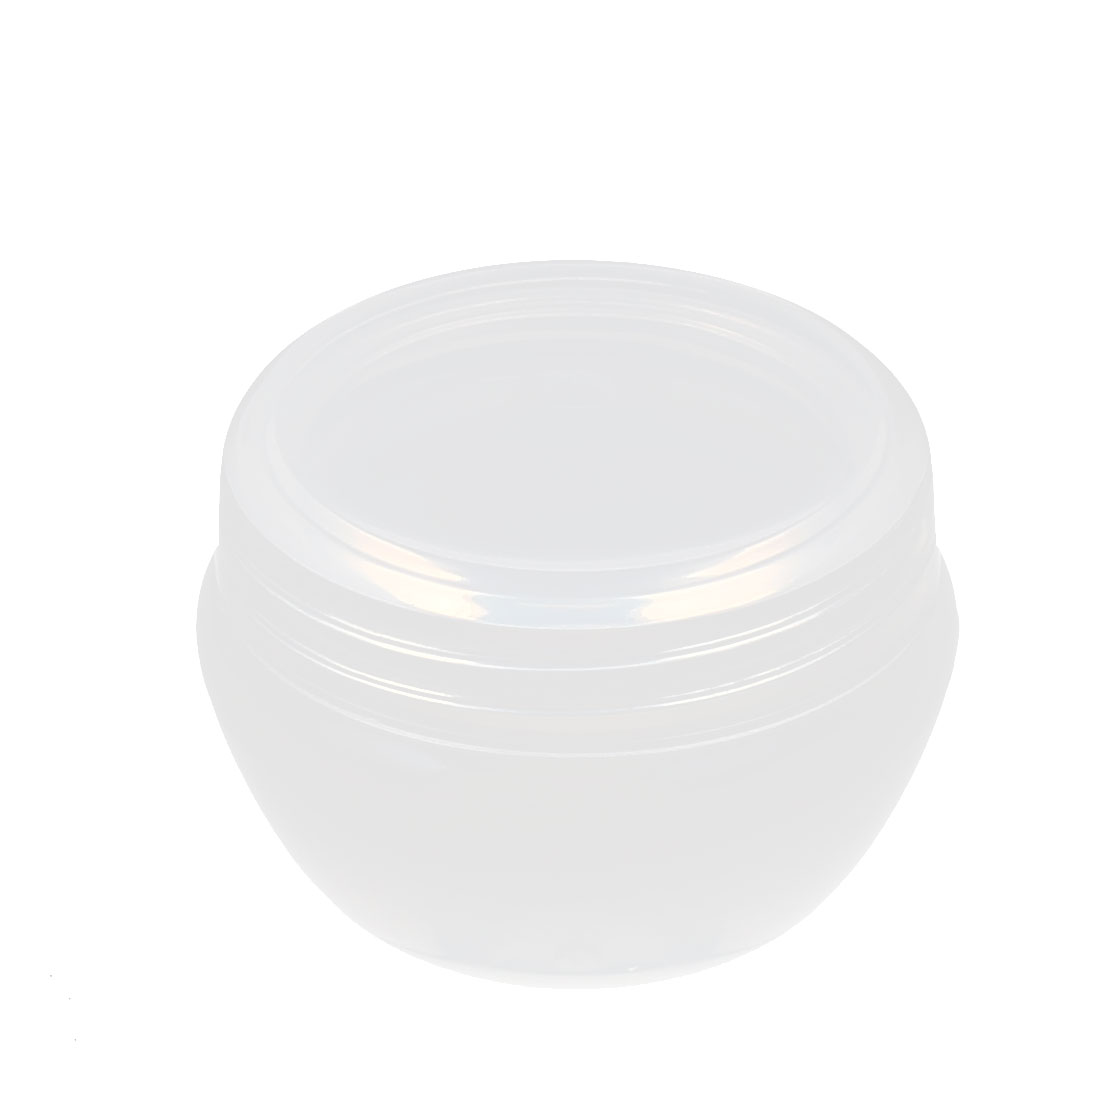 Plastic Makeup Cosmetic Empty Jar Pot Face Skin Cream Eyeshadow Container Holder 20g Clear